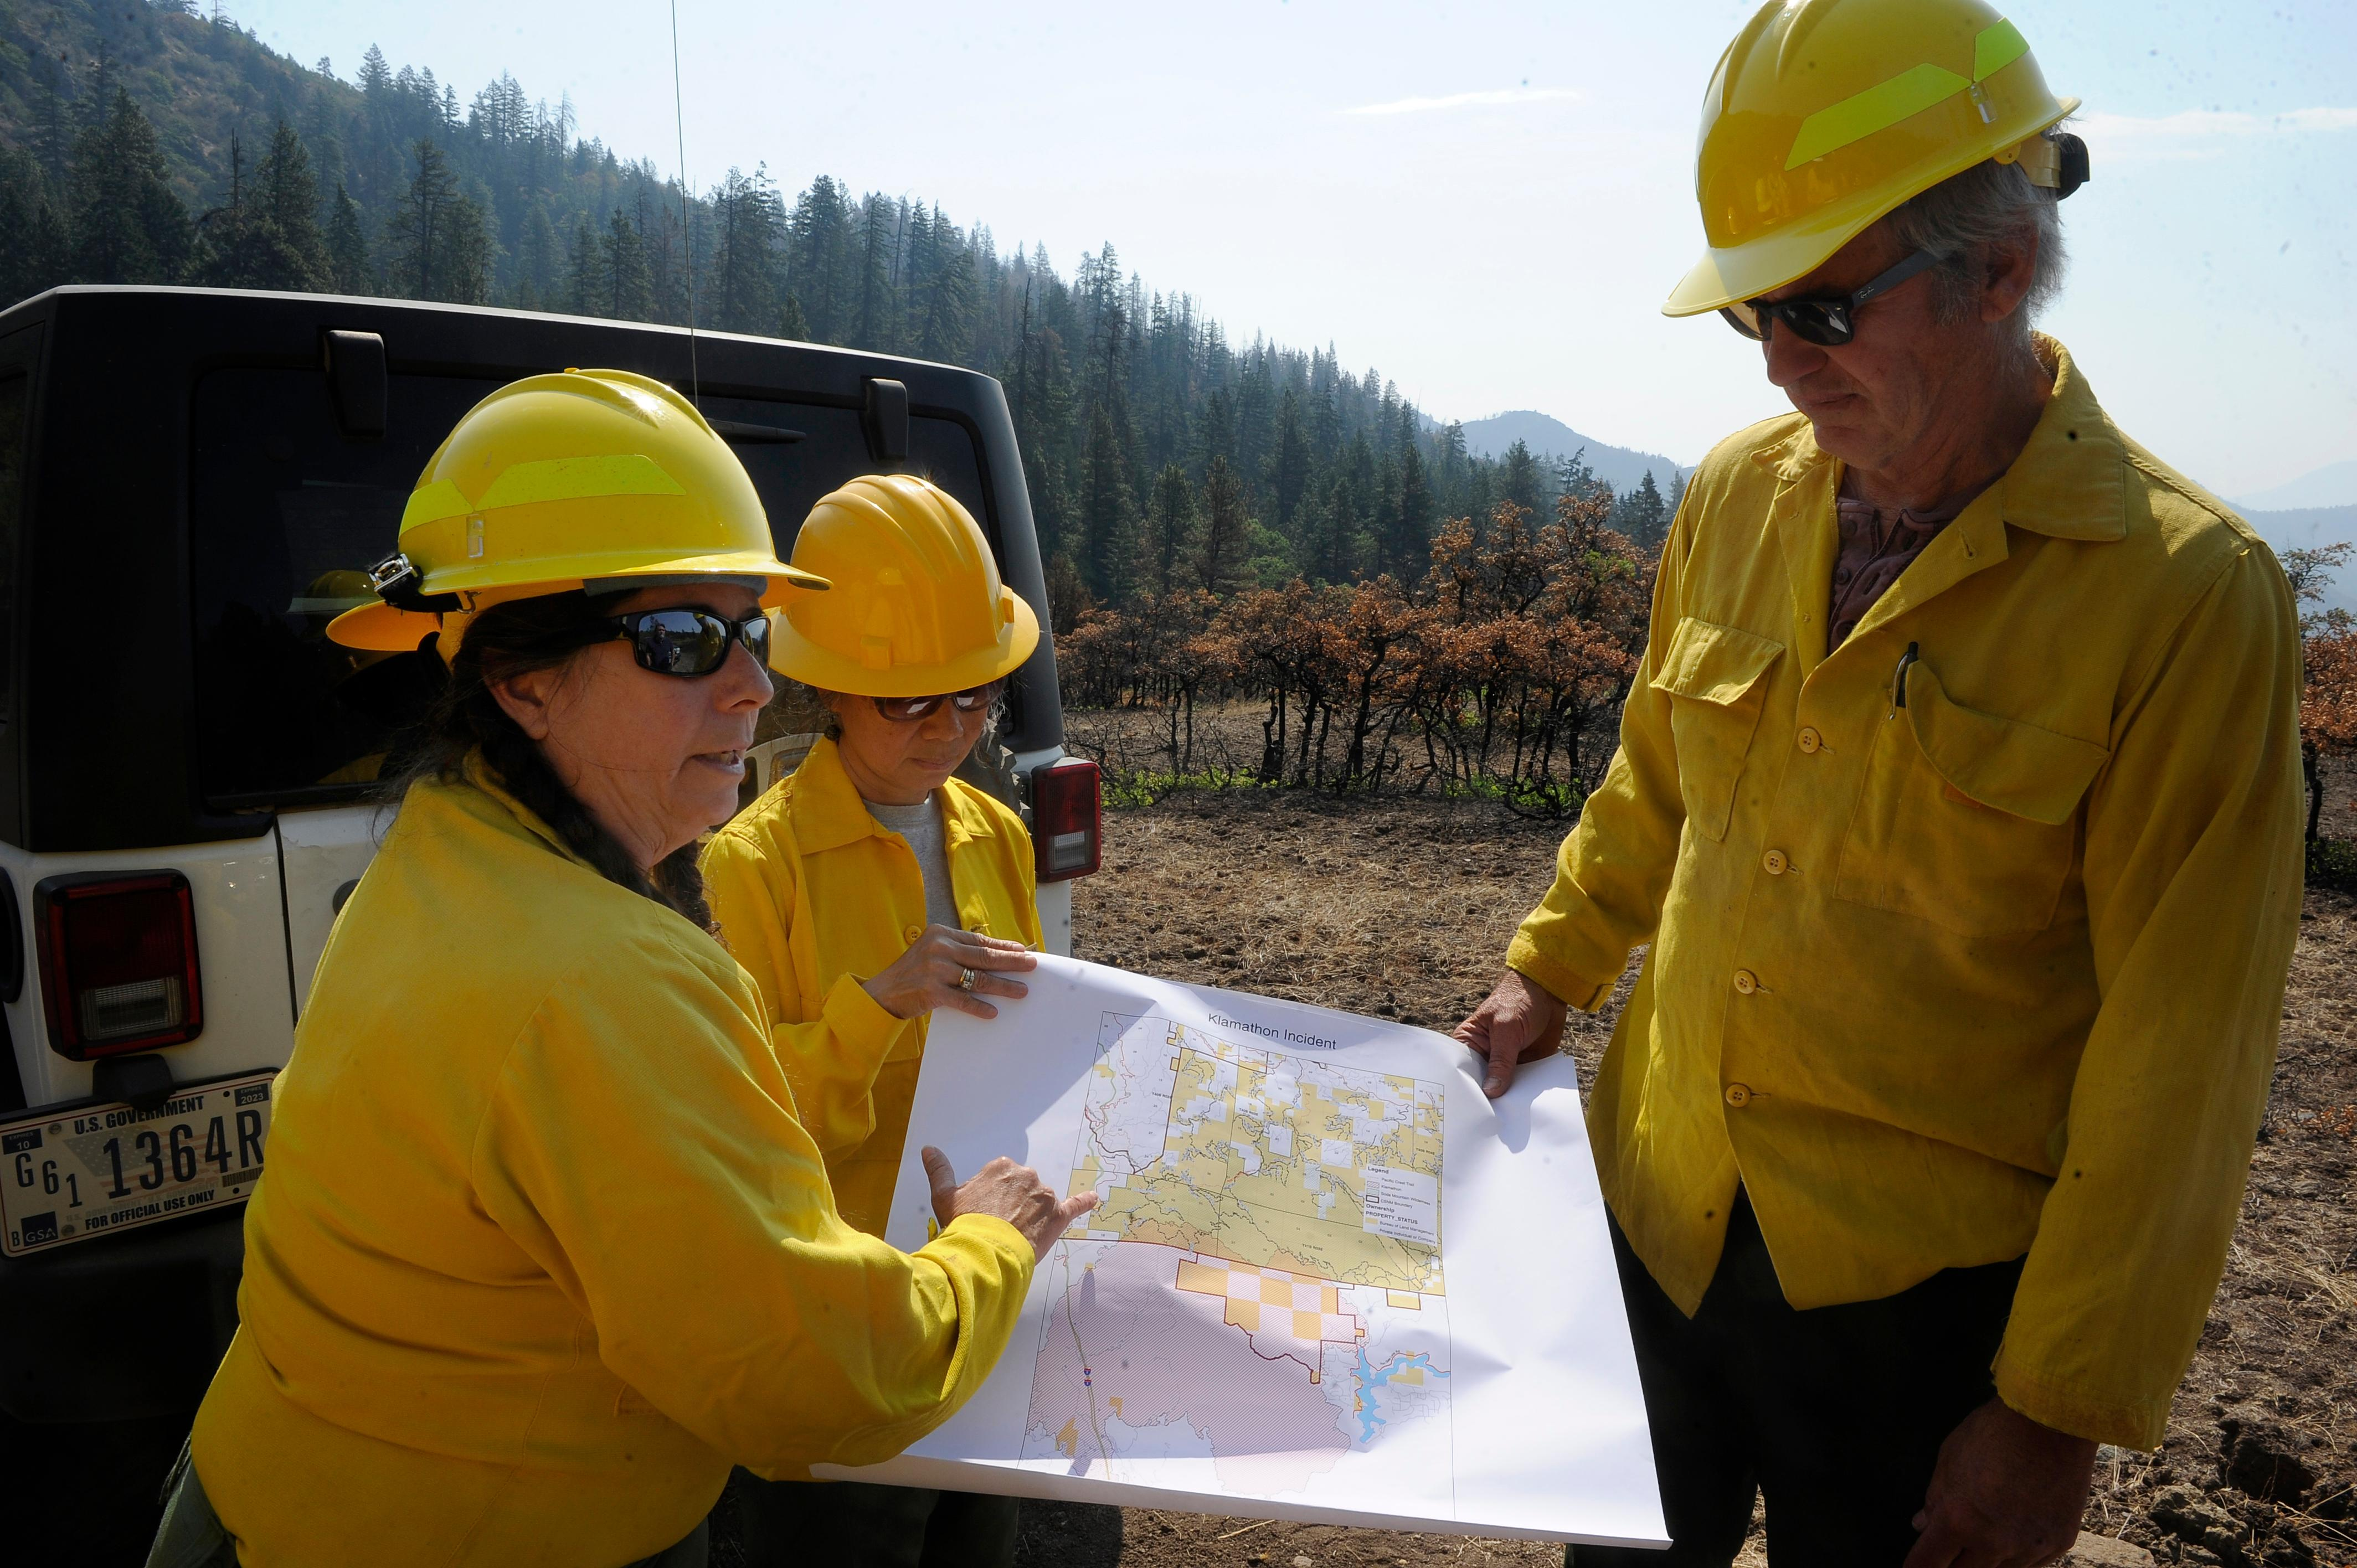 Andy Atkinson / Mail Tribune<br>Kristi Mastrofini, left, shows on a map where the Klamathon fire crossed the border south of Pilot Rock where dozers were used for fire lines.